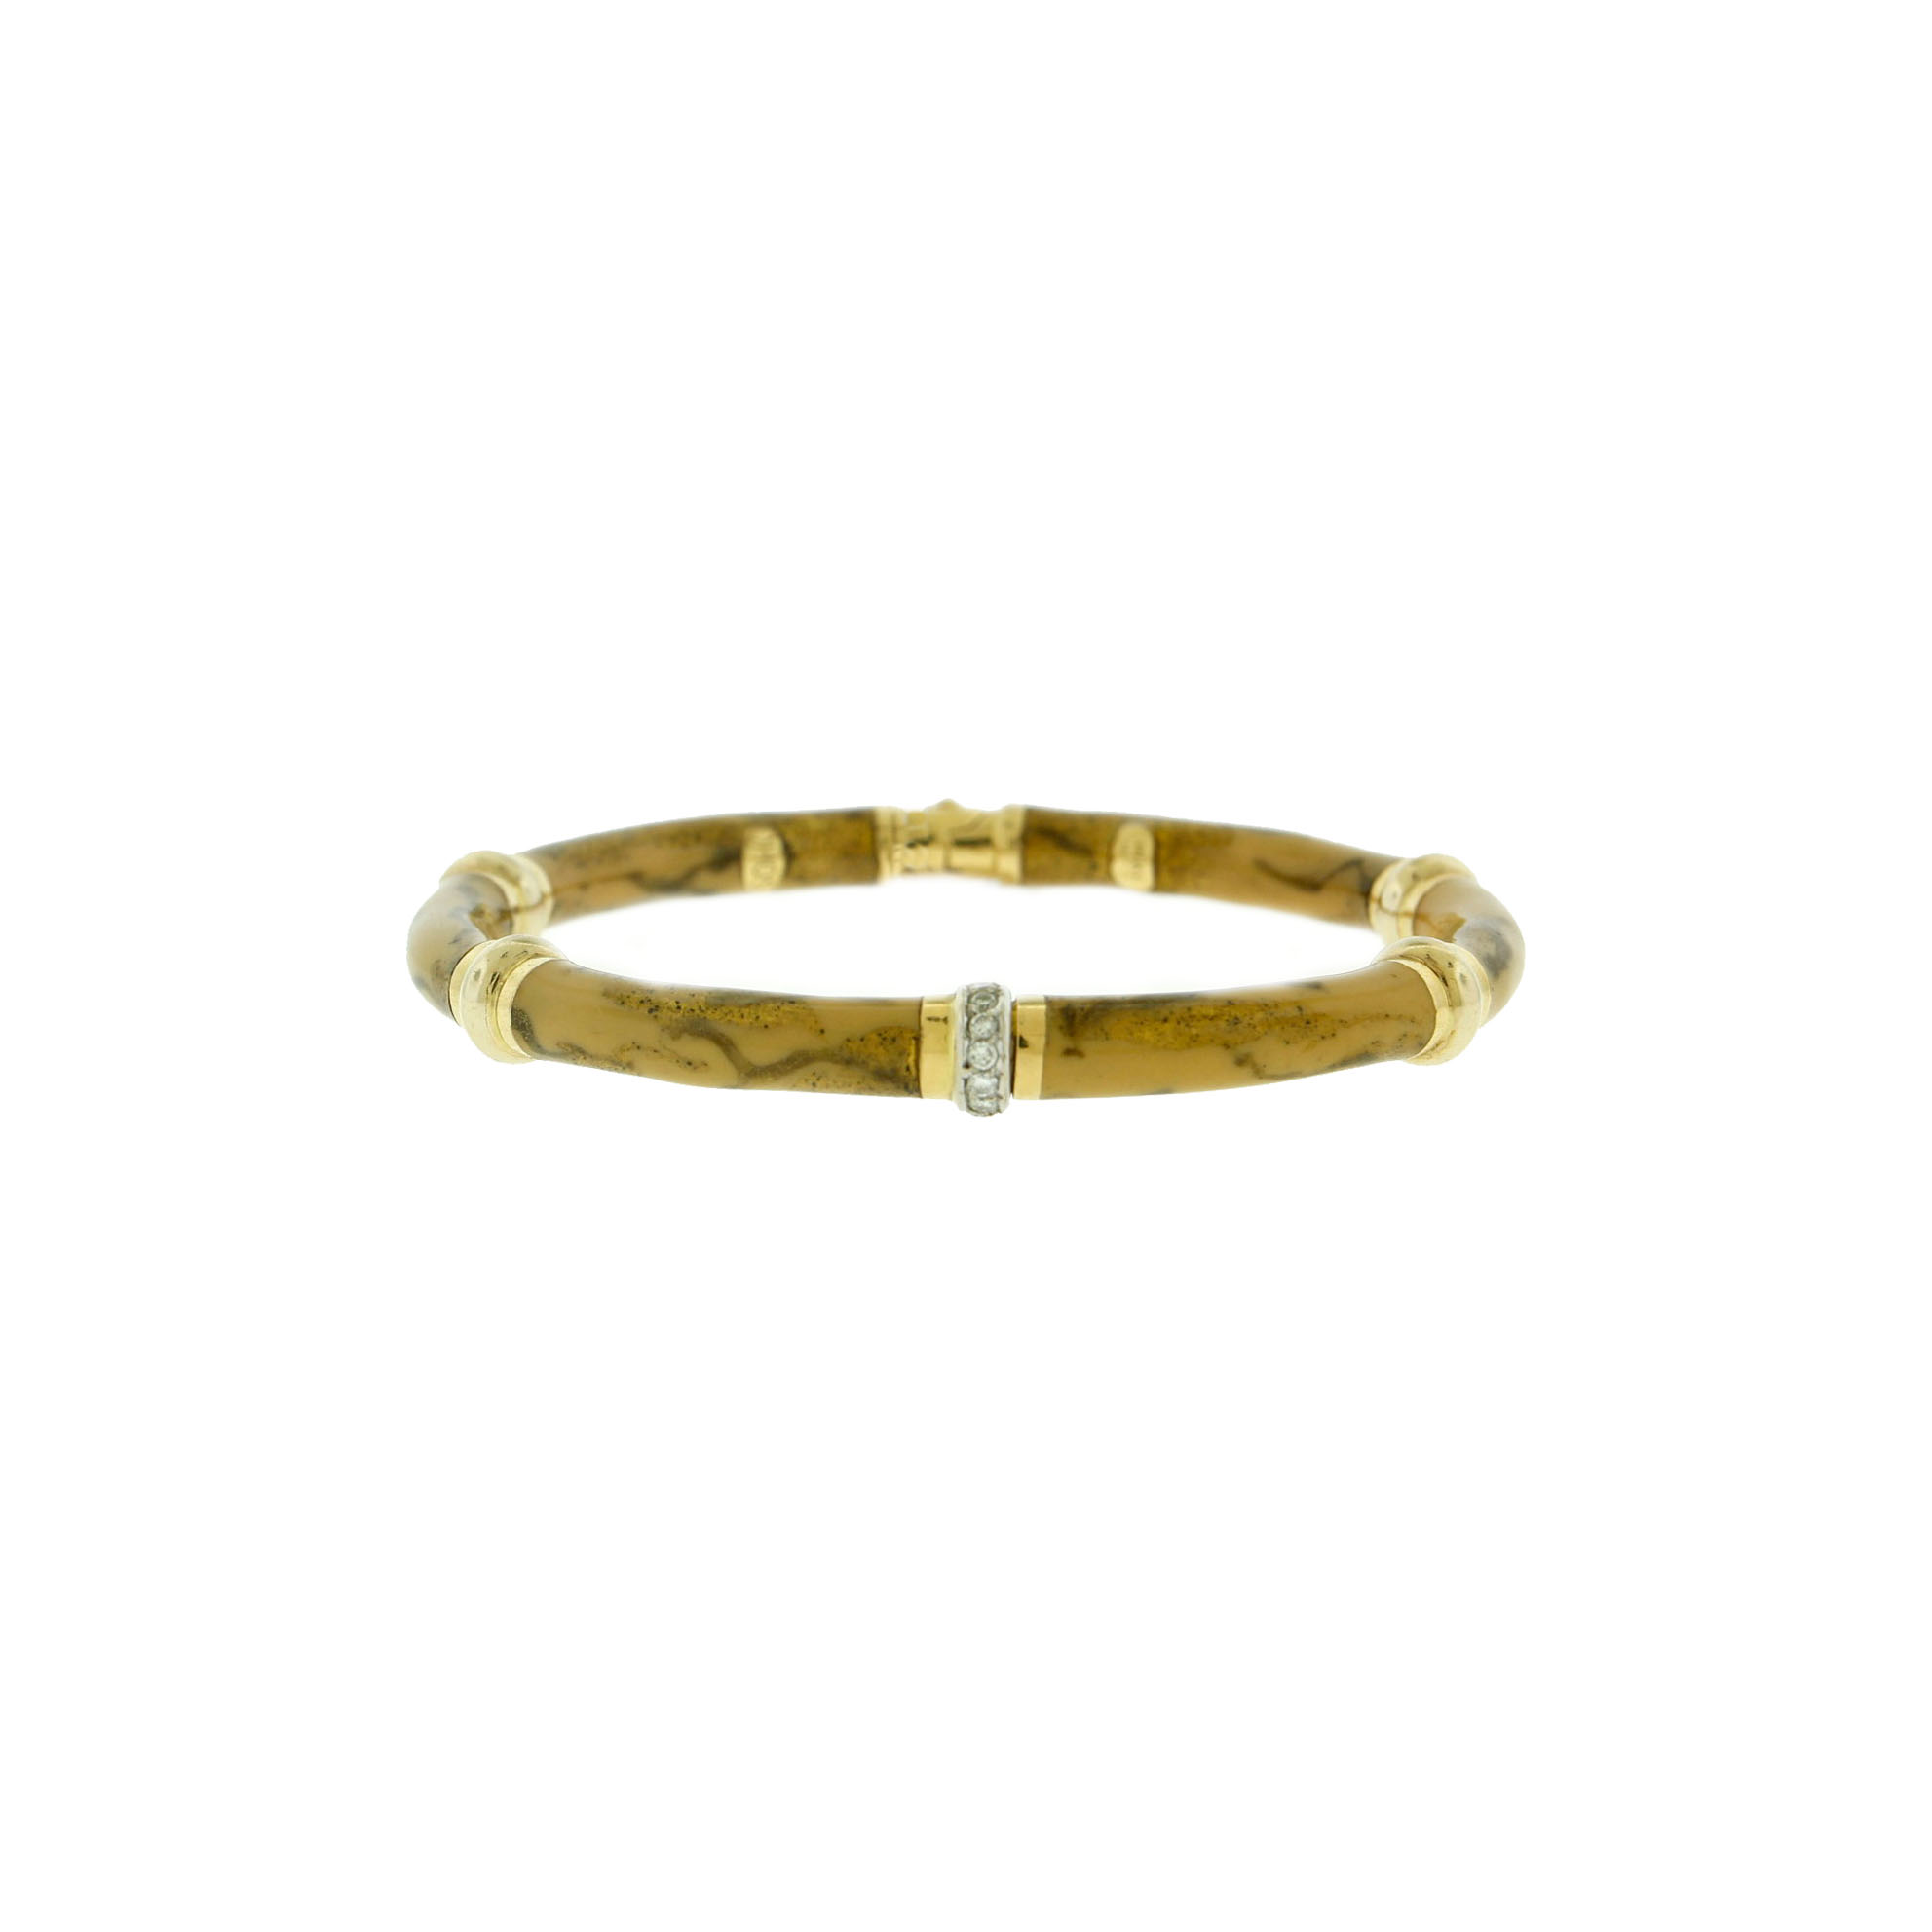 SOHO Enamel Bracelet 18k Yellow — Huffords Jewelry